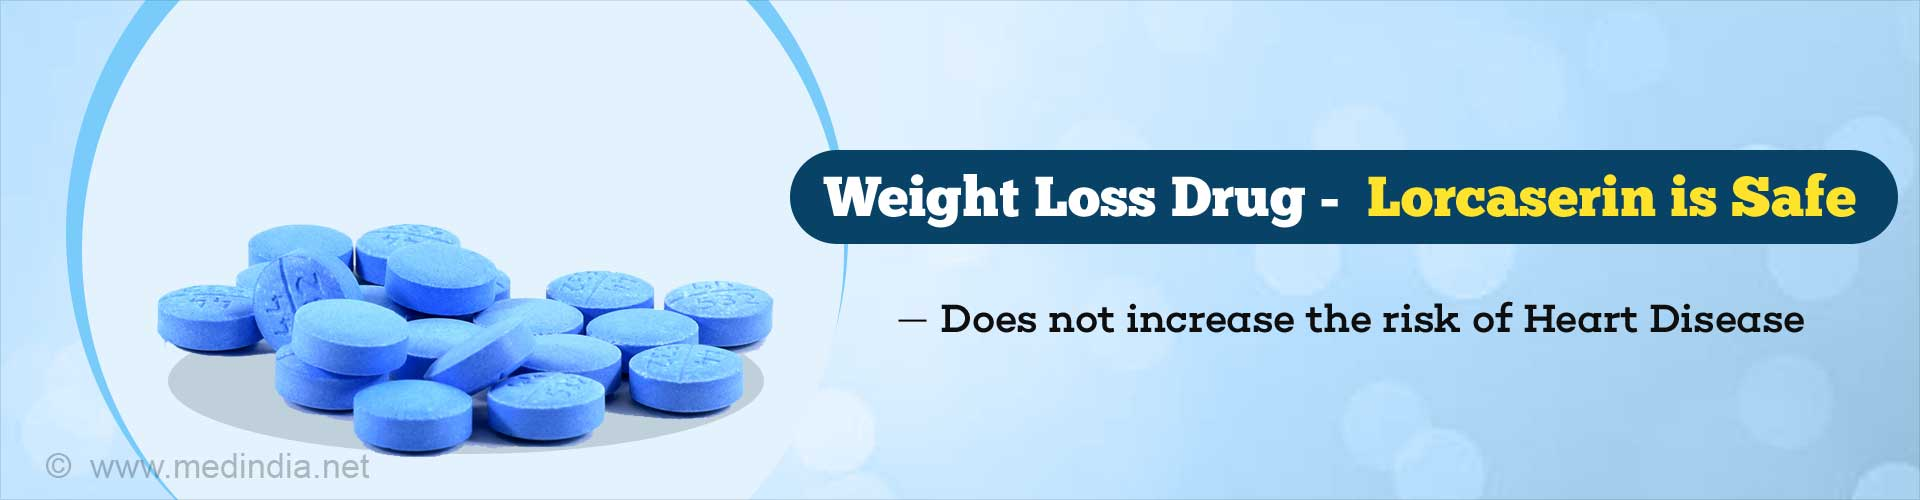 How Safe is Lorcaserin for Weight Loss in Patients Having Risk Factors of Heart Disease?